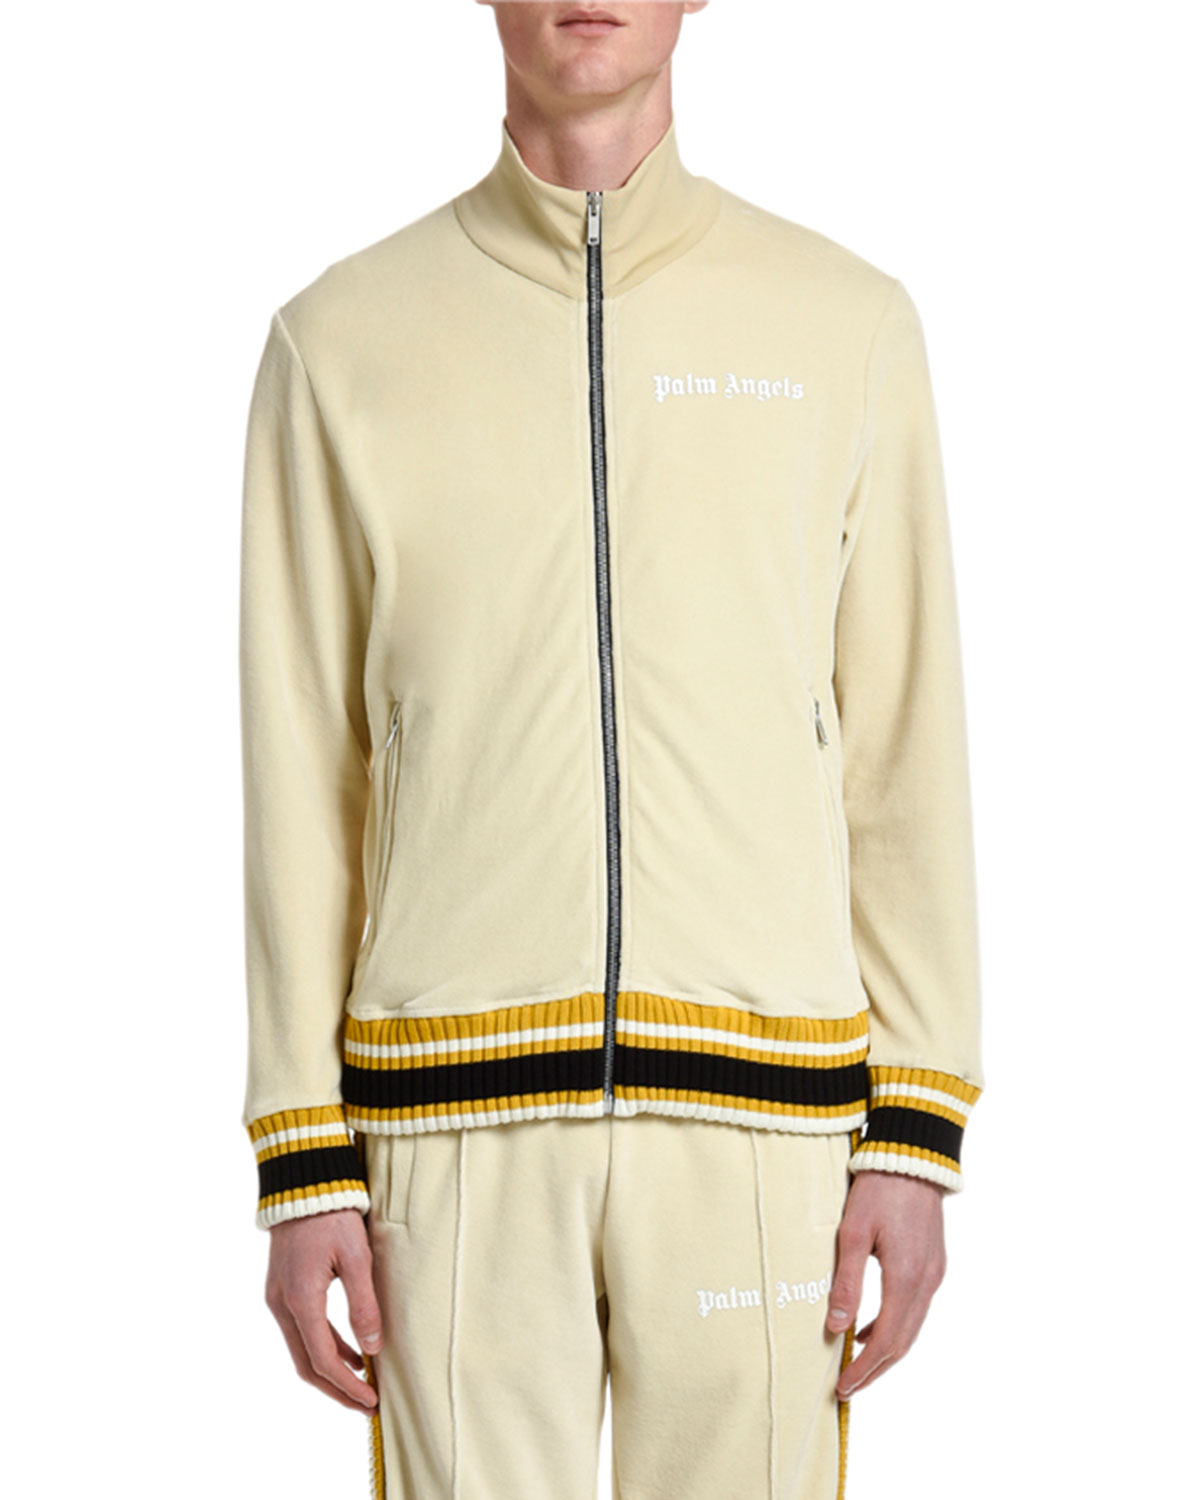 Palm Angels Jackets MEN'S CHENILLE TRACK JACKET WITH STRIPES